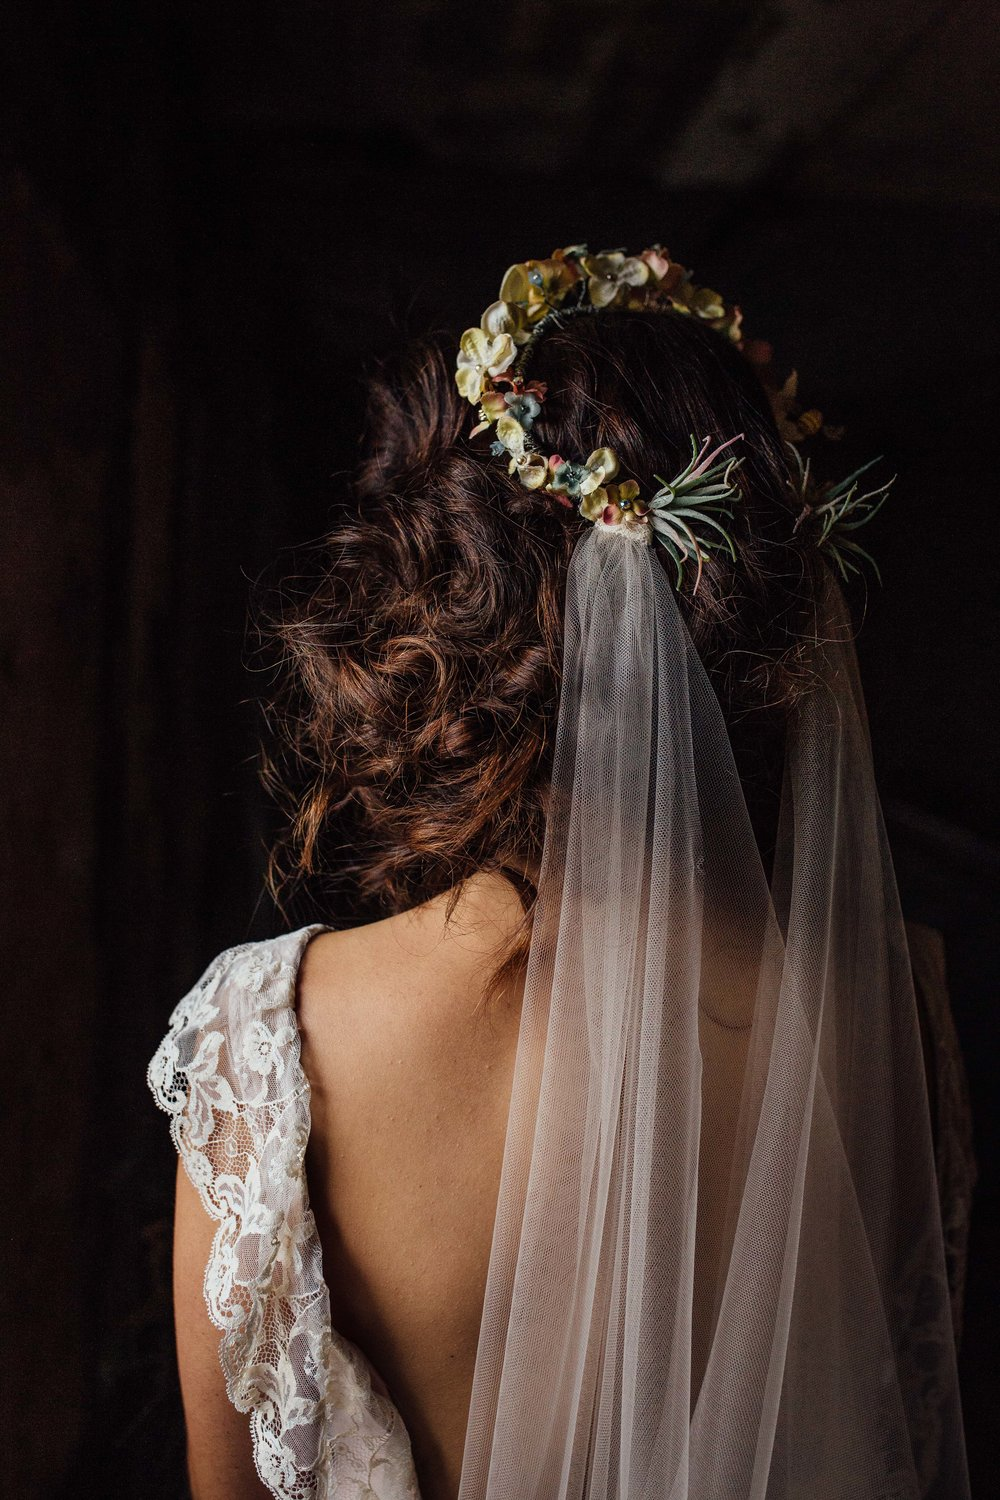 Katy-Bespoke-Veil-Sheffield-Wedding-Wes-Anderson-Susanna-Greening-Derbyshire-25